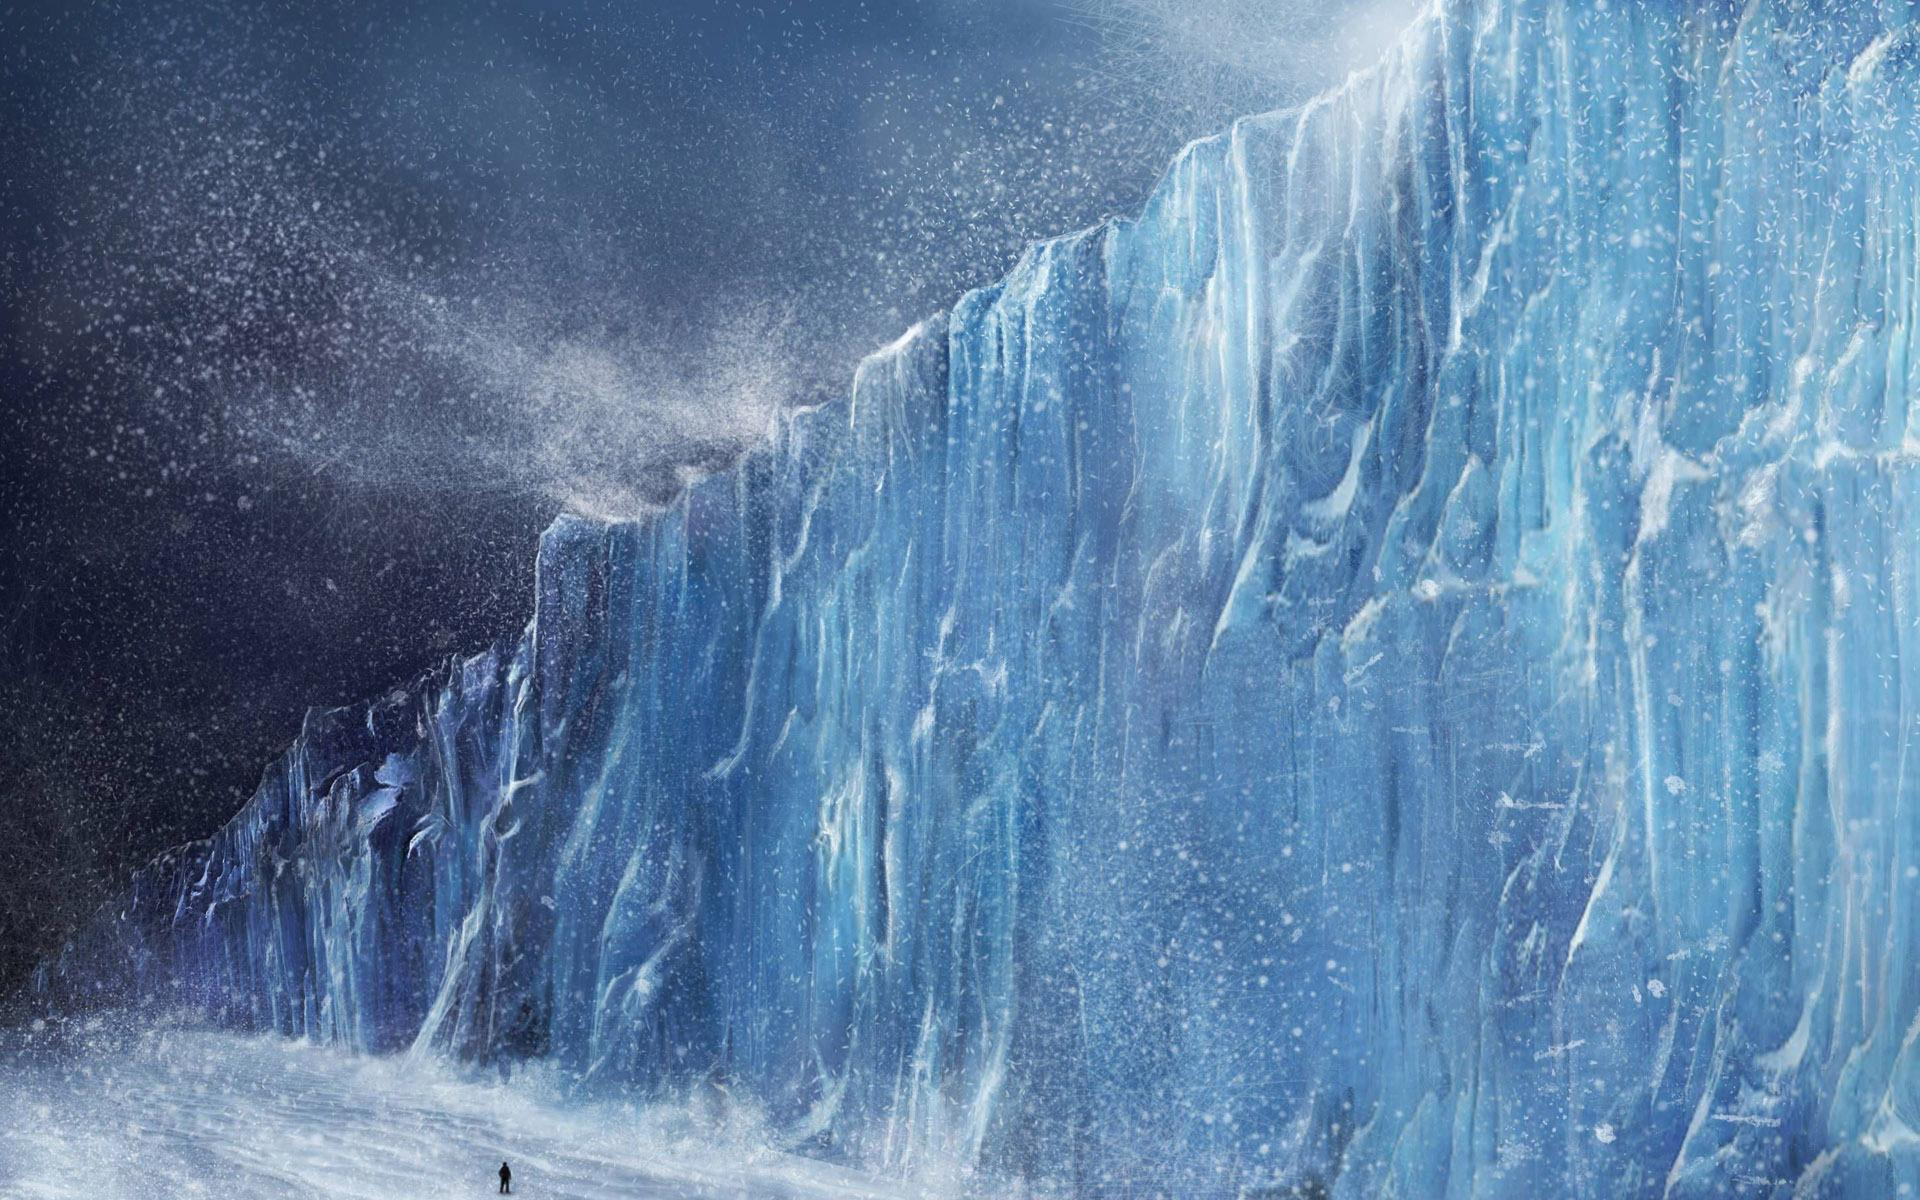 ice_wall_ice_wall_winter_fantasy_snow-27570.jpg